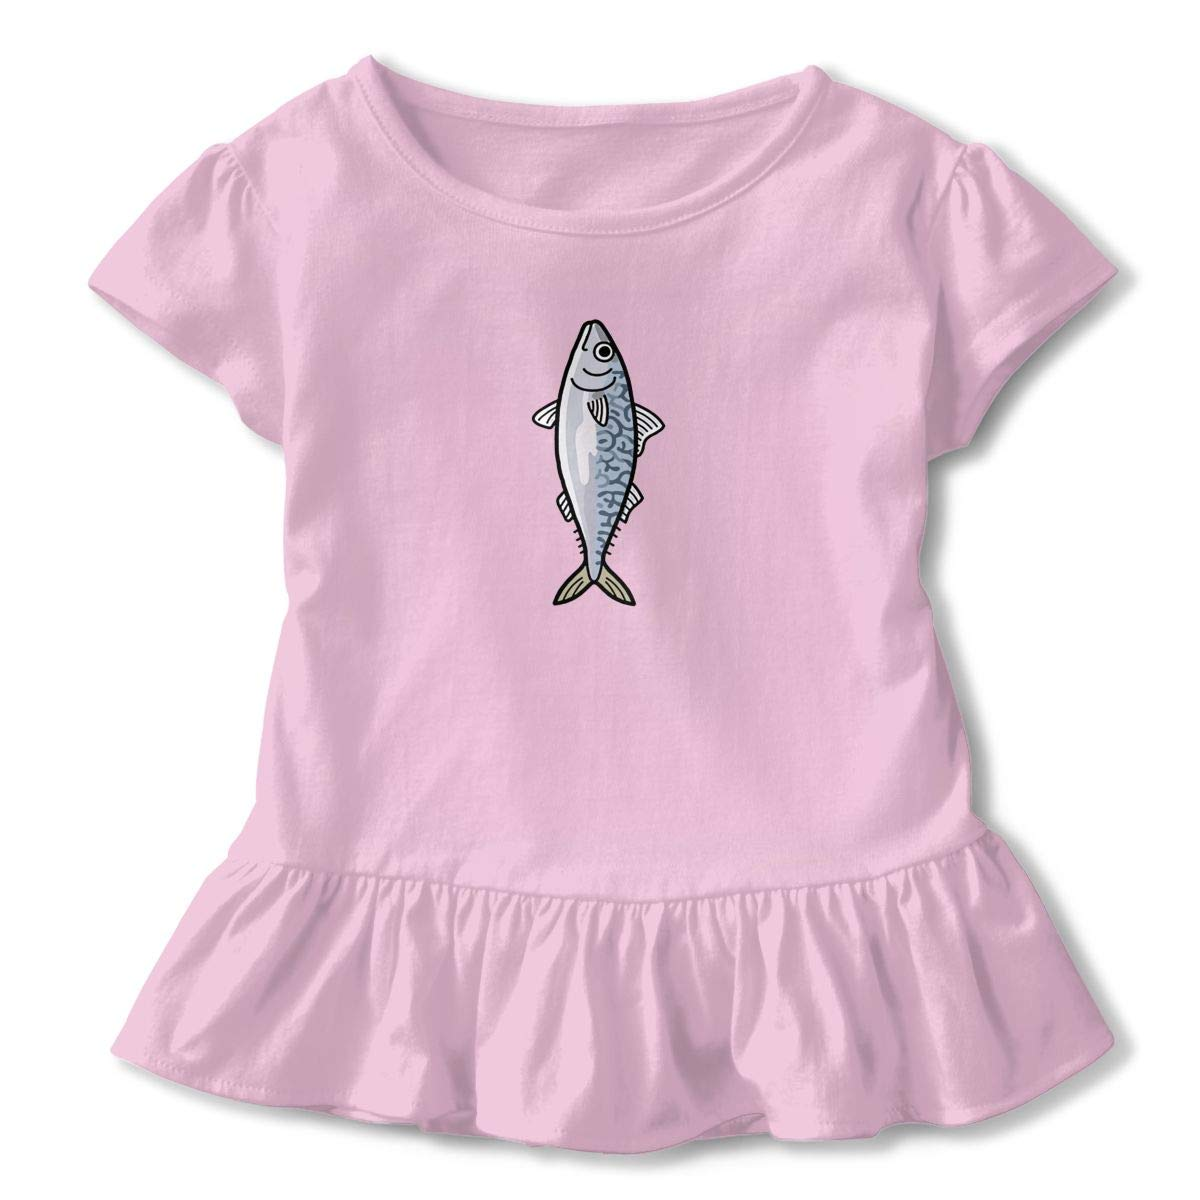 Fish Toddler Girls Cute Animal Floral Letter Print at Front Short Sleeve Casual Summer Baby Children Tunic Dress Shirt